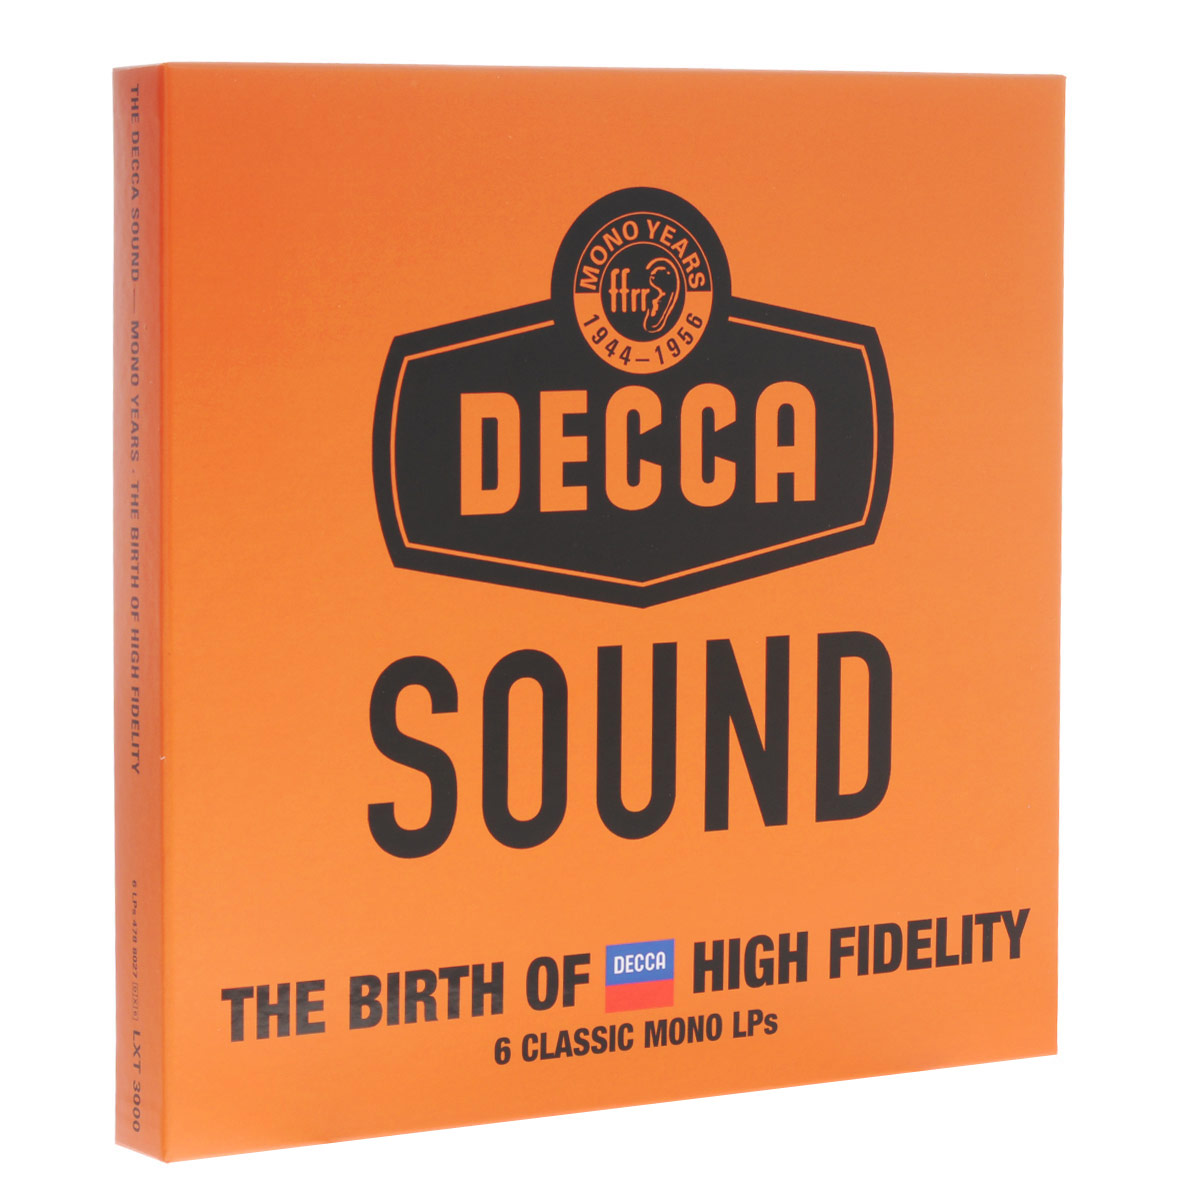 The Decca Sound - Mono Years. The Birth Of High Fidelity (Limited Edition) (6 LP)